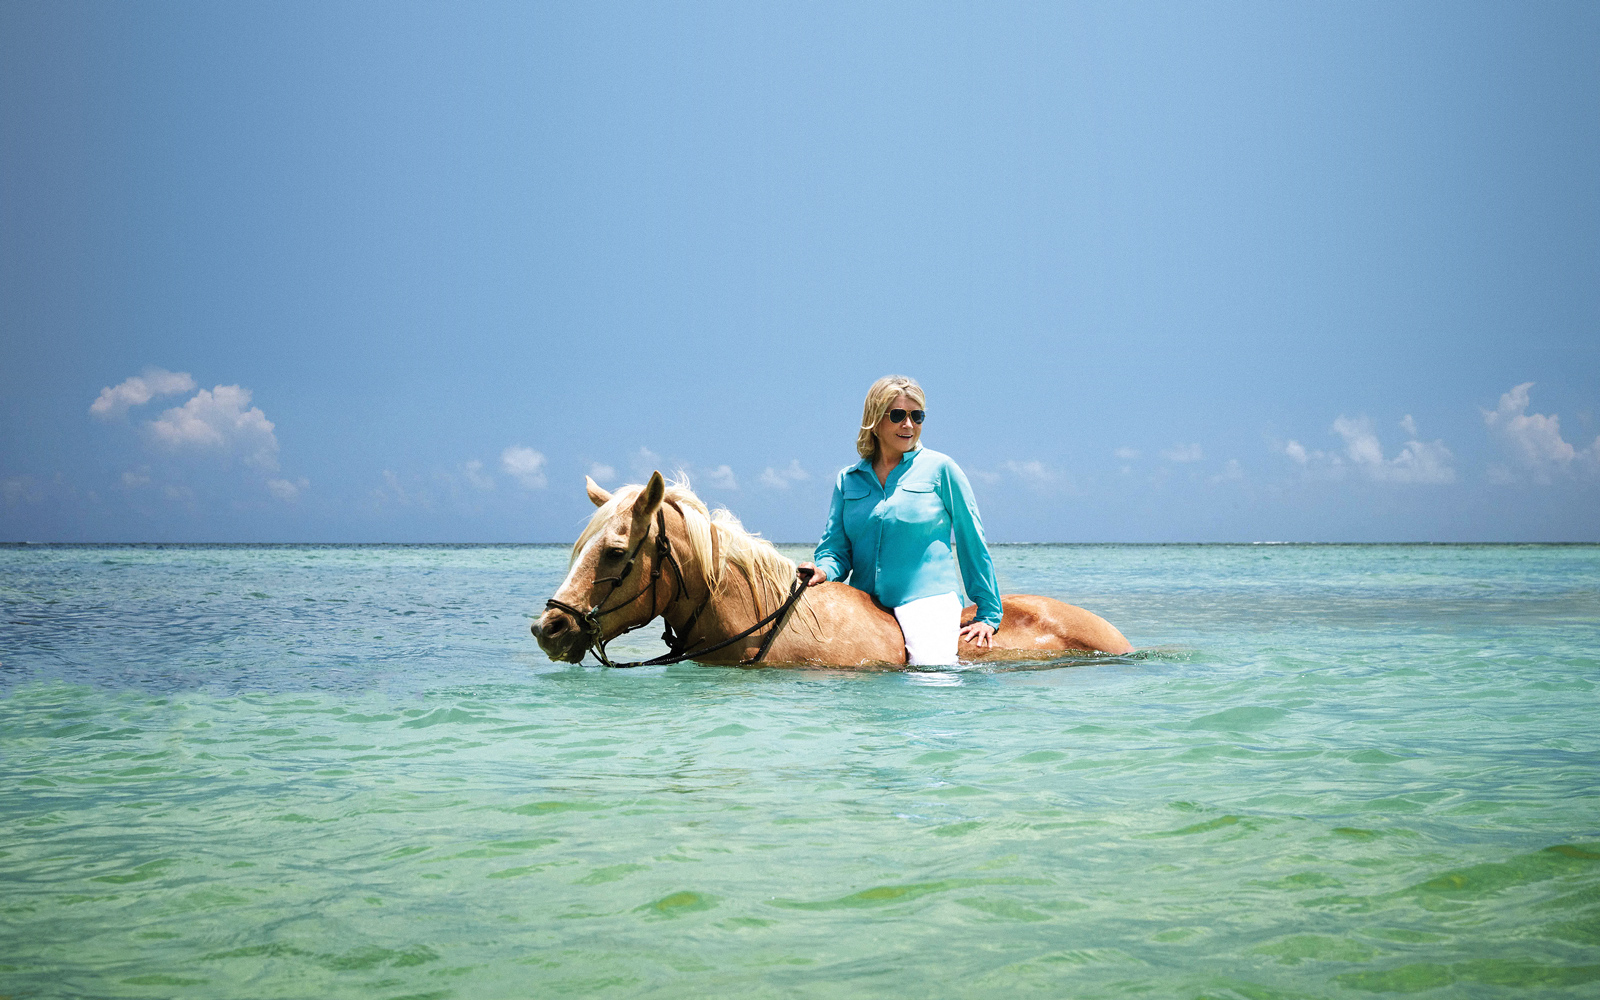 Martha Stewart's New Cruise Excursions Include Horseback Riding in the Ocean and Local Cooking Classes